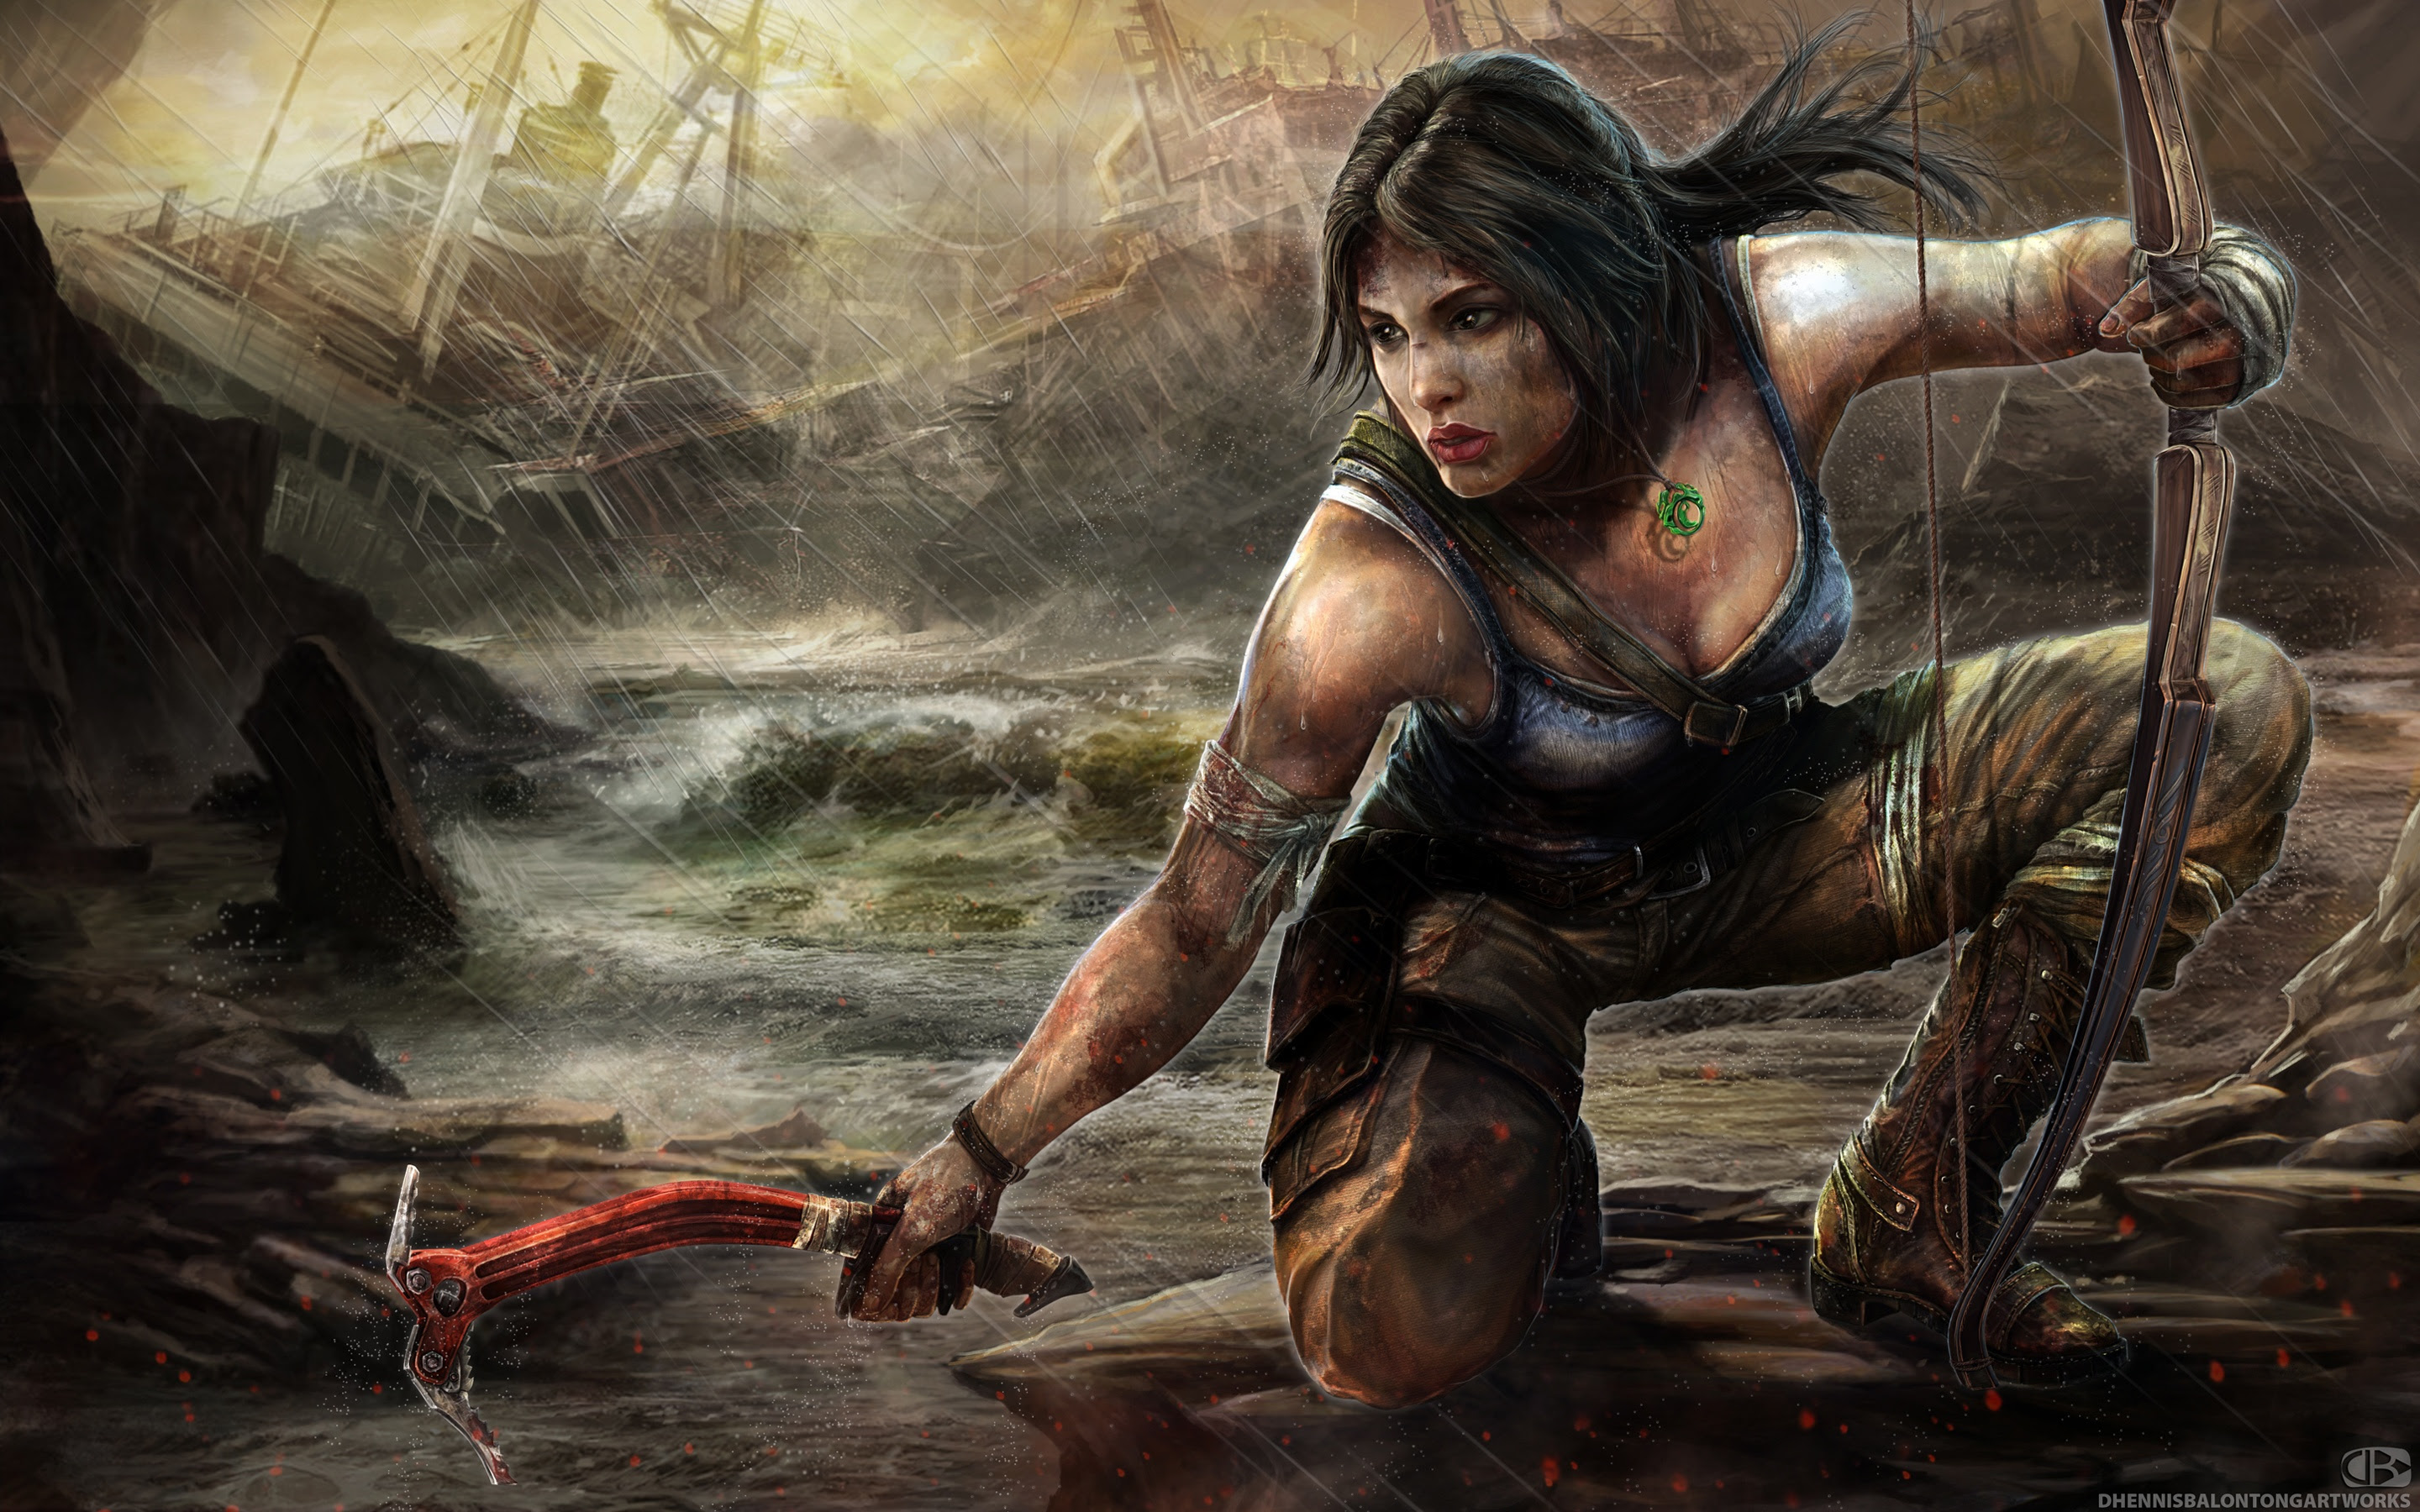 Lara Croft Tomb Raider Artwork Wallpapers In Jpg Format For Free